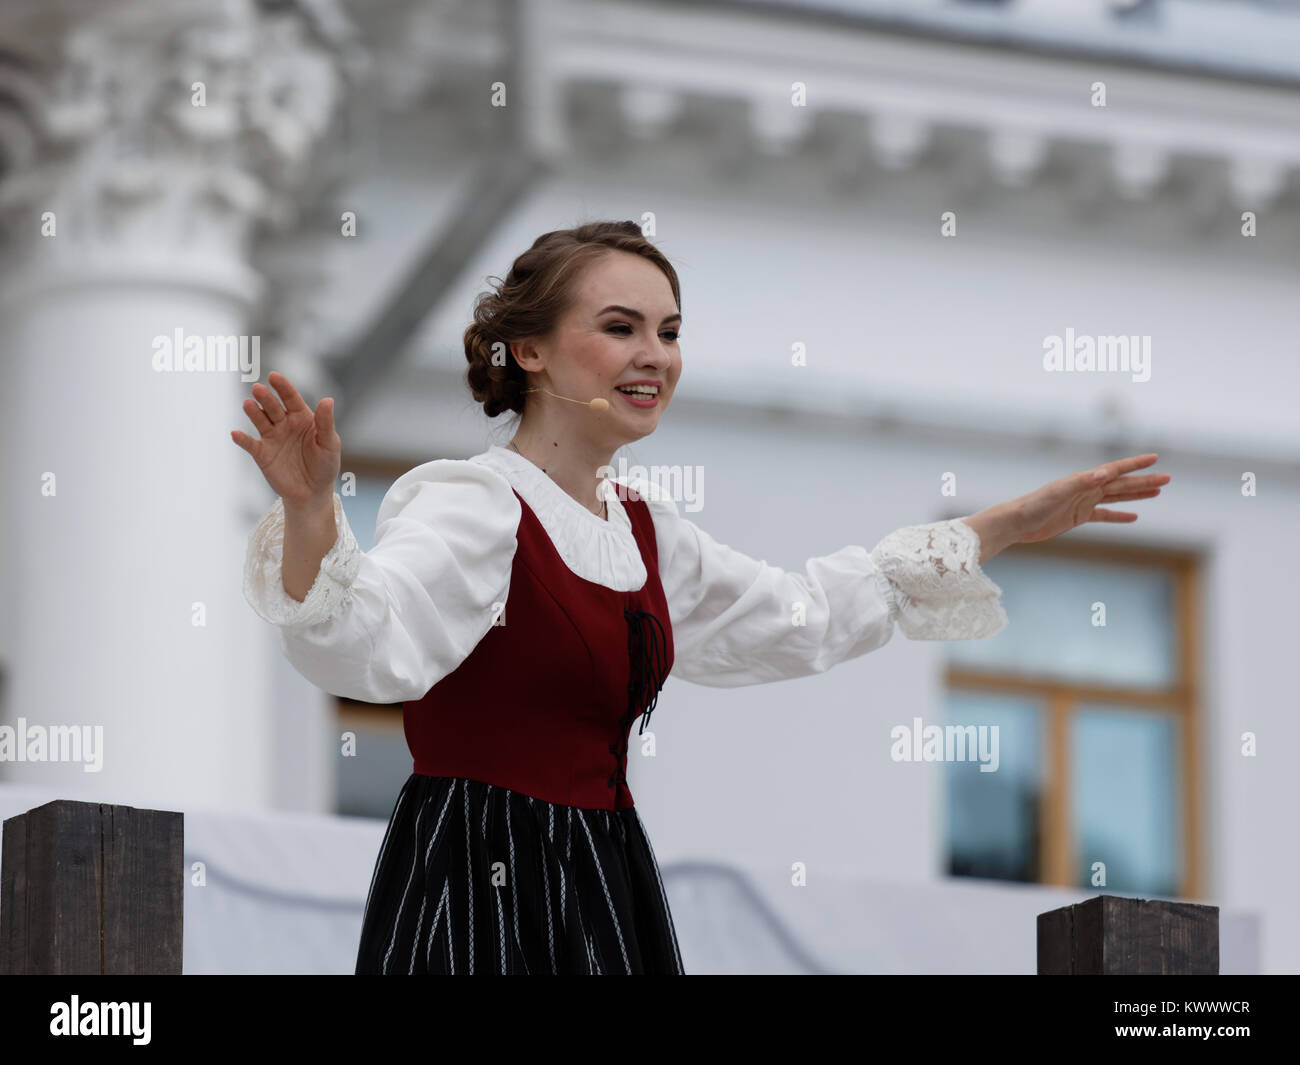 St. Petersburg, Russia - July 19, 2017: Olga Cheremnykh as Anchen in the opera The Marksman of C. M. von Weber outdoors - Stock Image